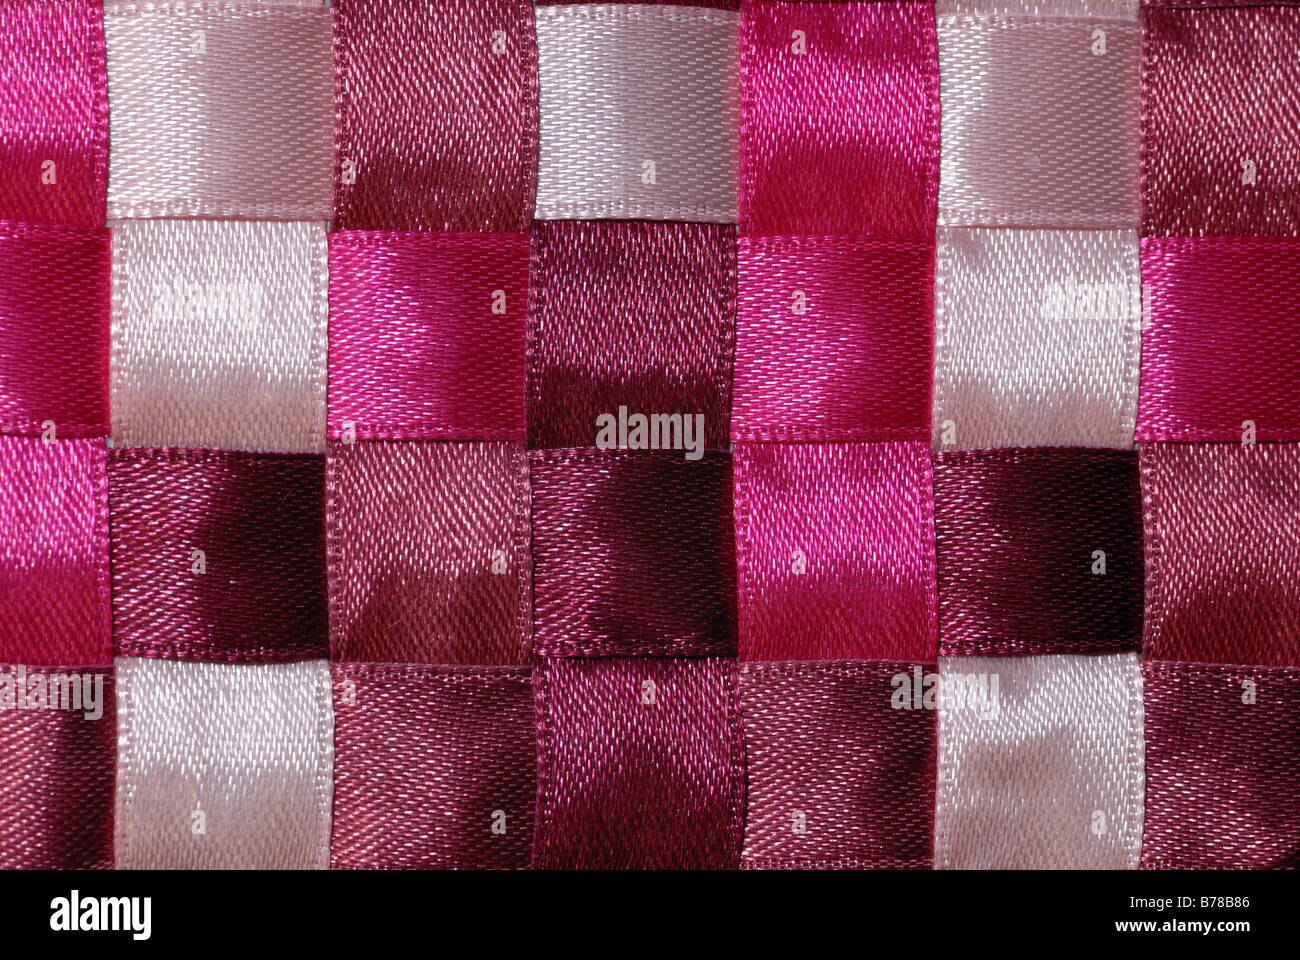 Pink ribbon of varying colors woven into a checkerboard pattern. - Stock Image